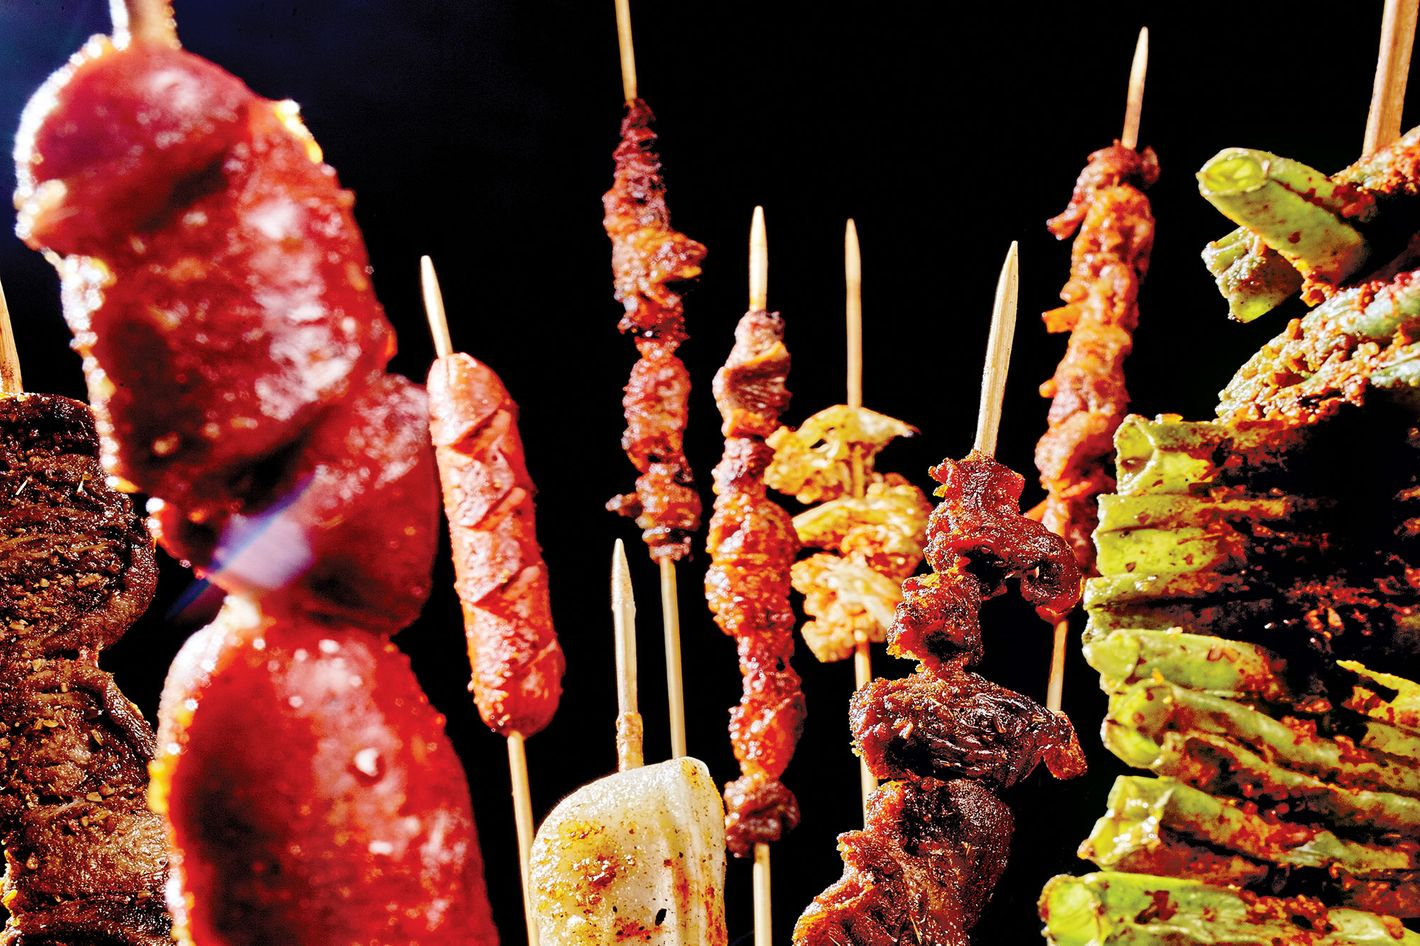 Taste of Northern China's skewers.